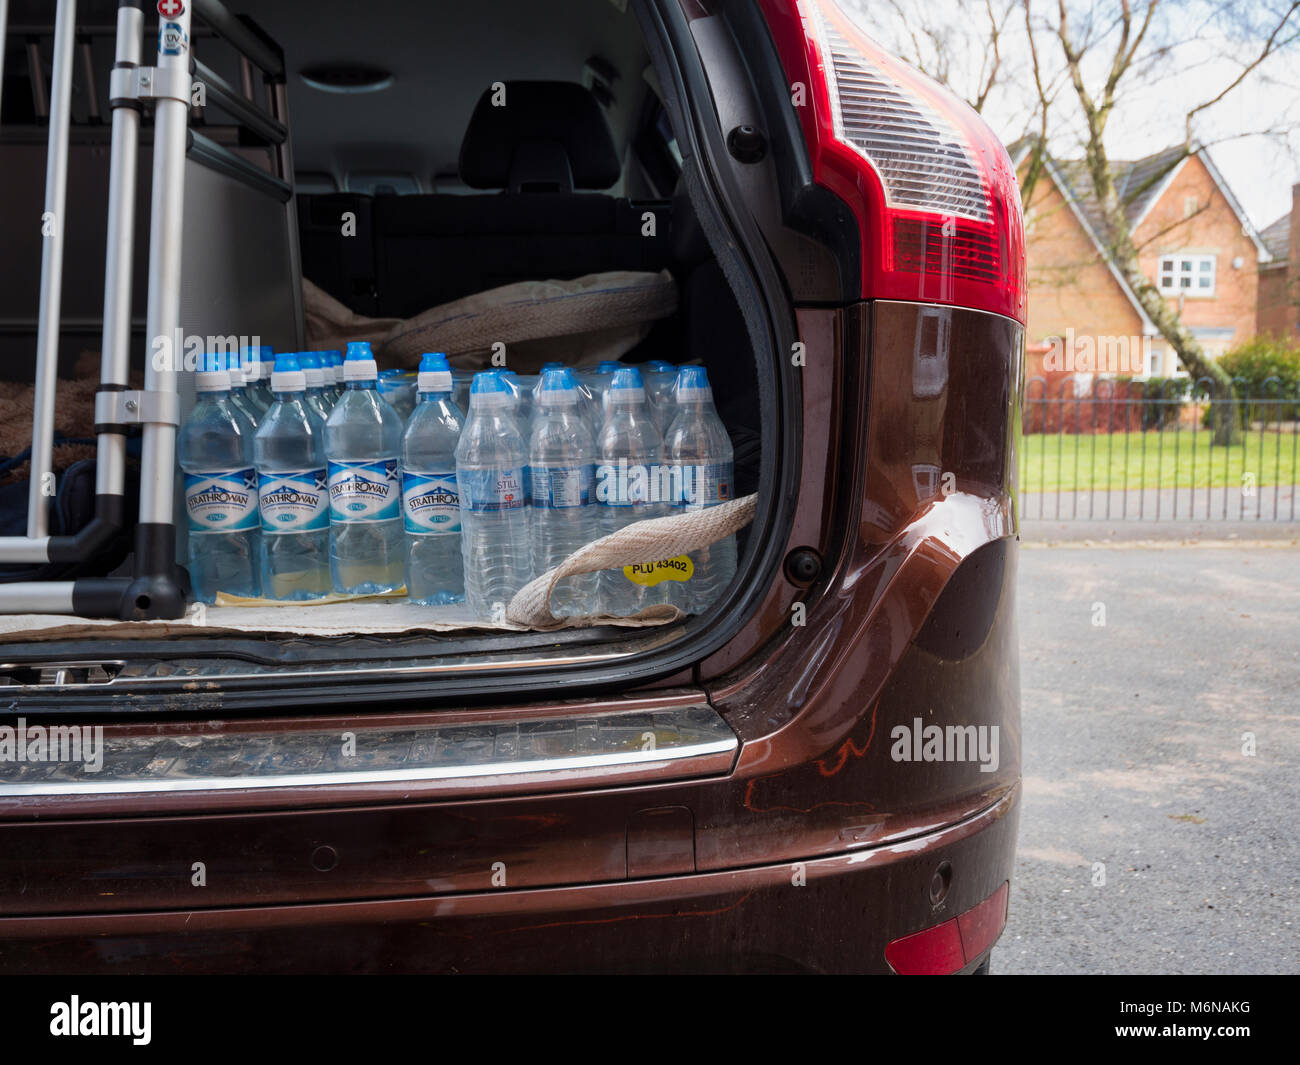 Ashbourne, UK. 5th March, 2018. UK Weather; People in Ashbourne stockpile bottled water from Aldi as the supermarkets - Stock Image